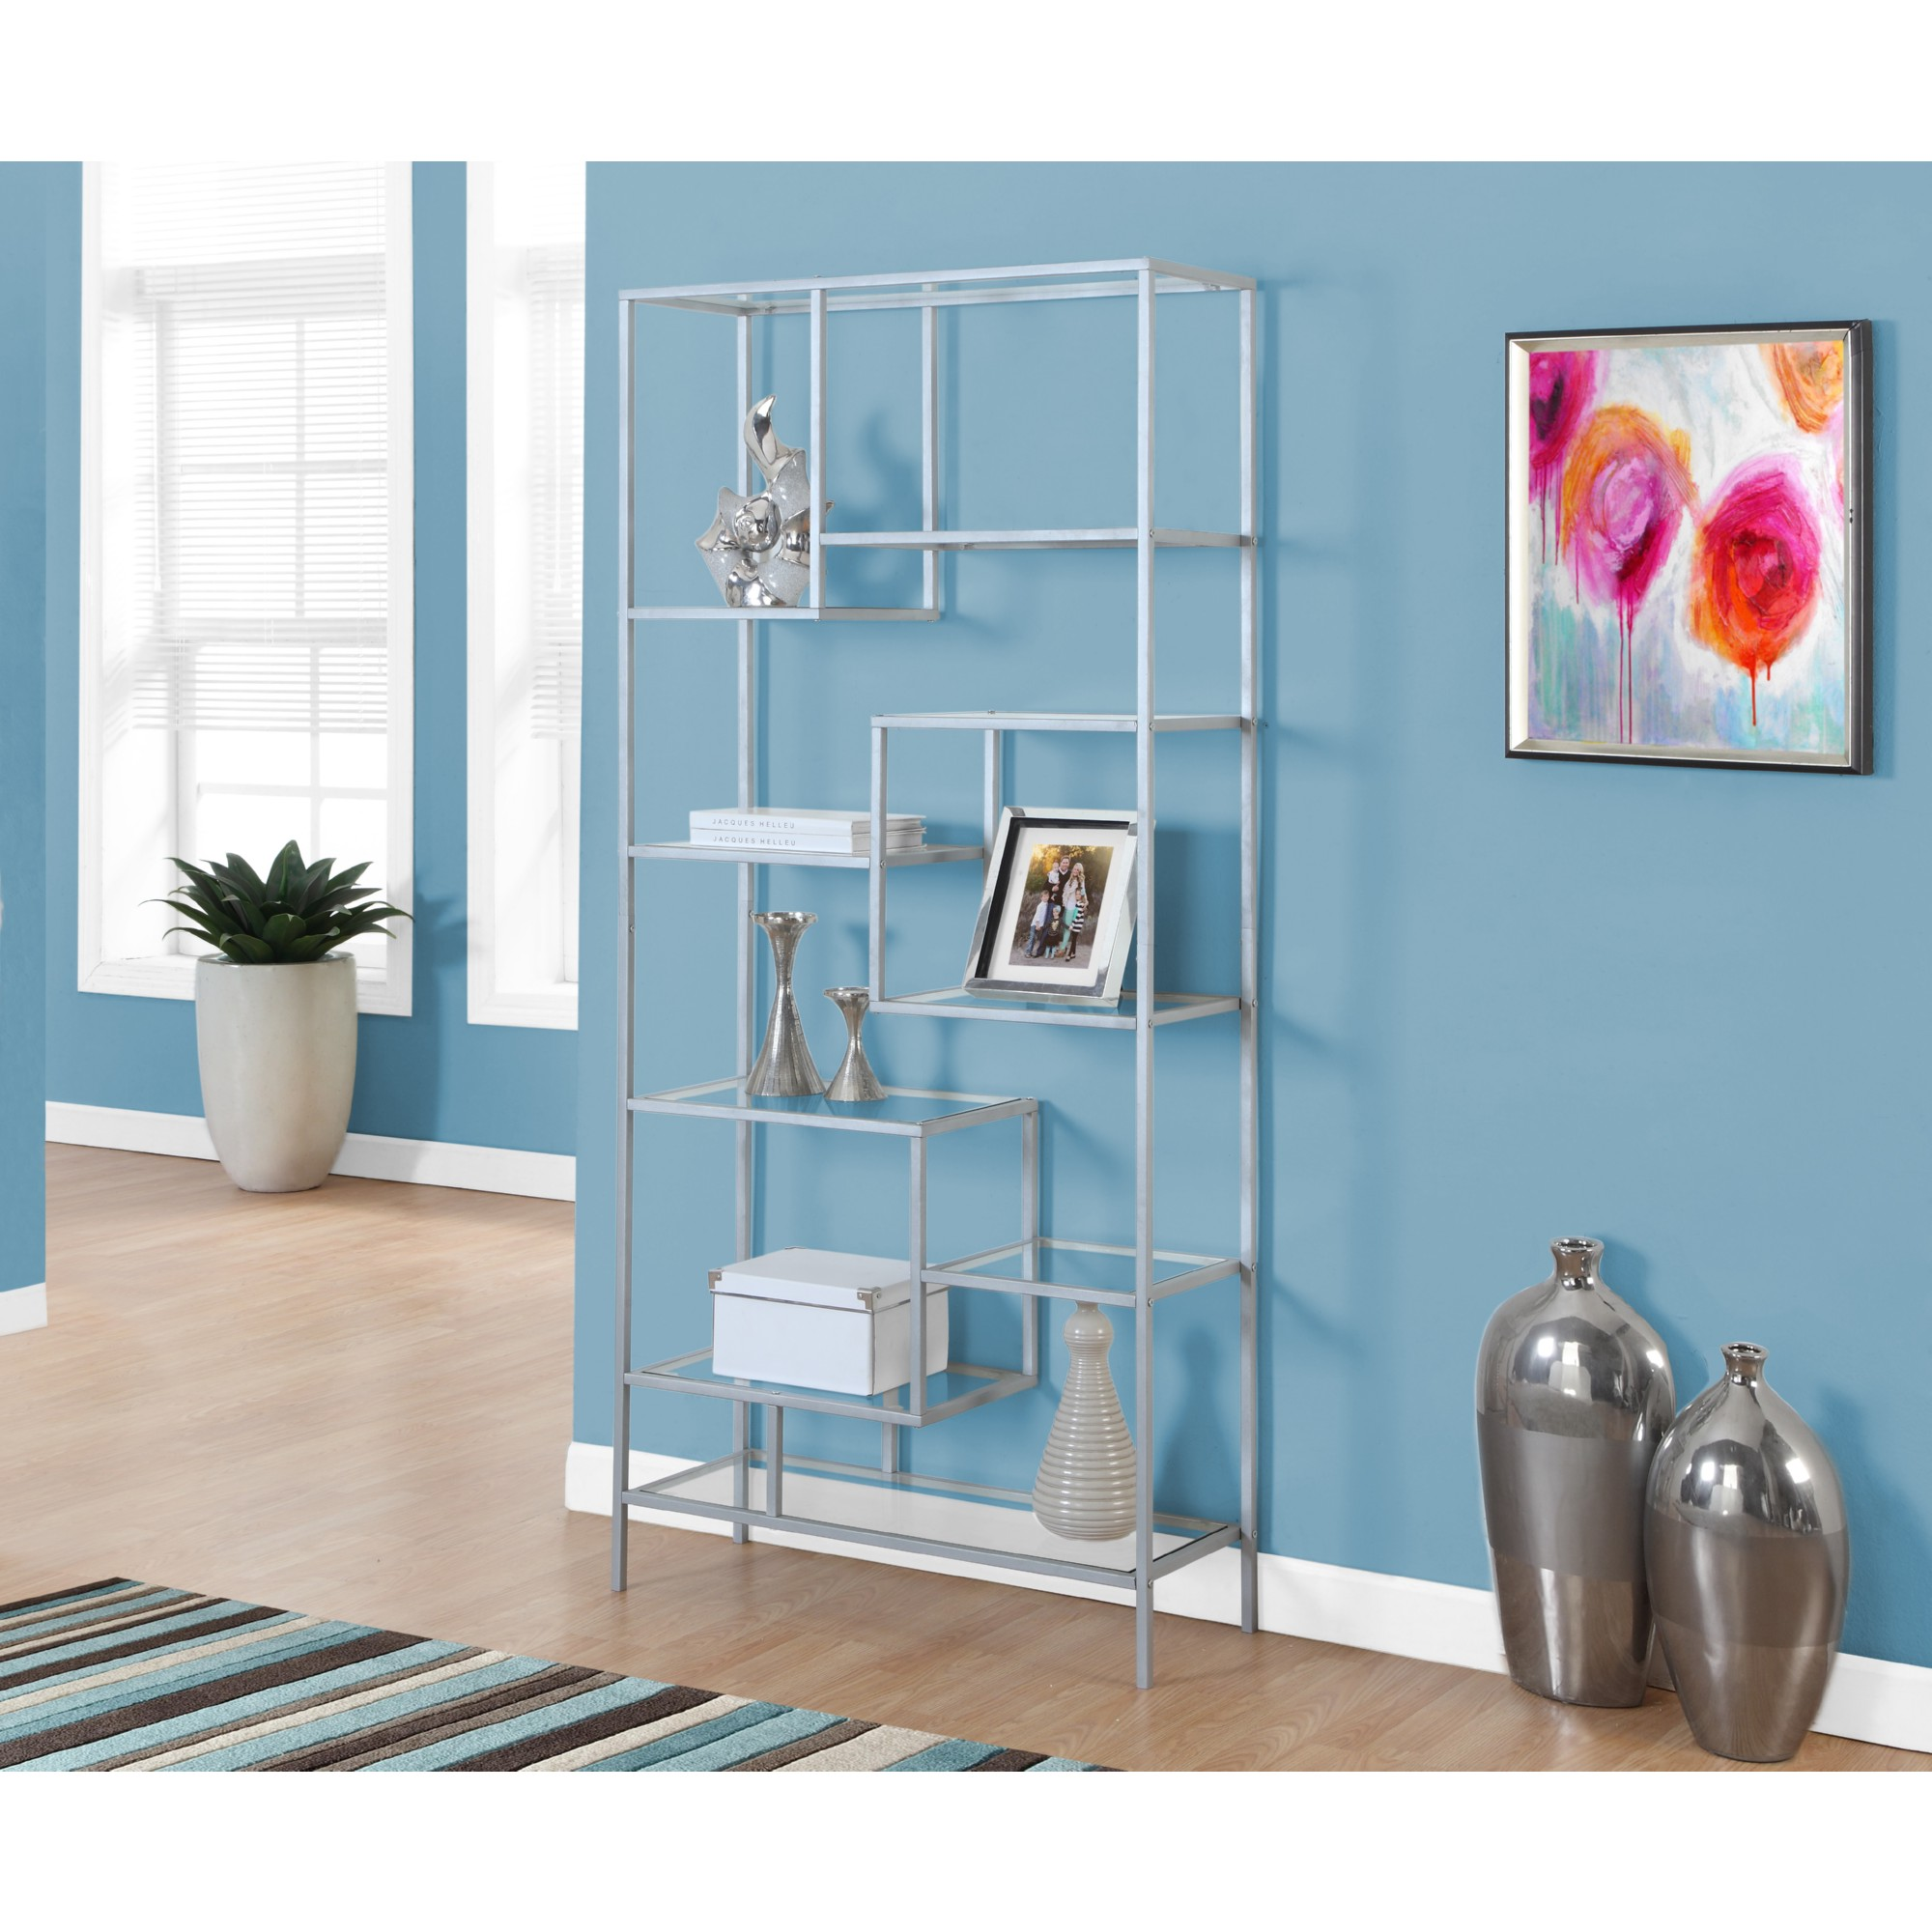 Monrach I 7158 72 Quot Bookcase In Silver Metal W 9 Asymmetrical Tempered Glass Shelves